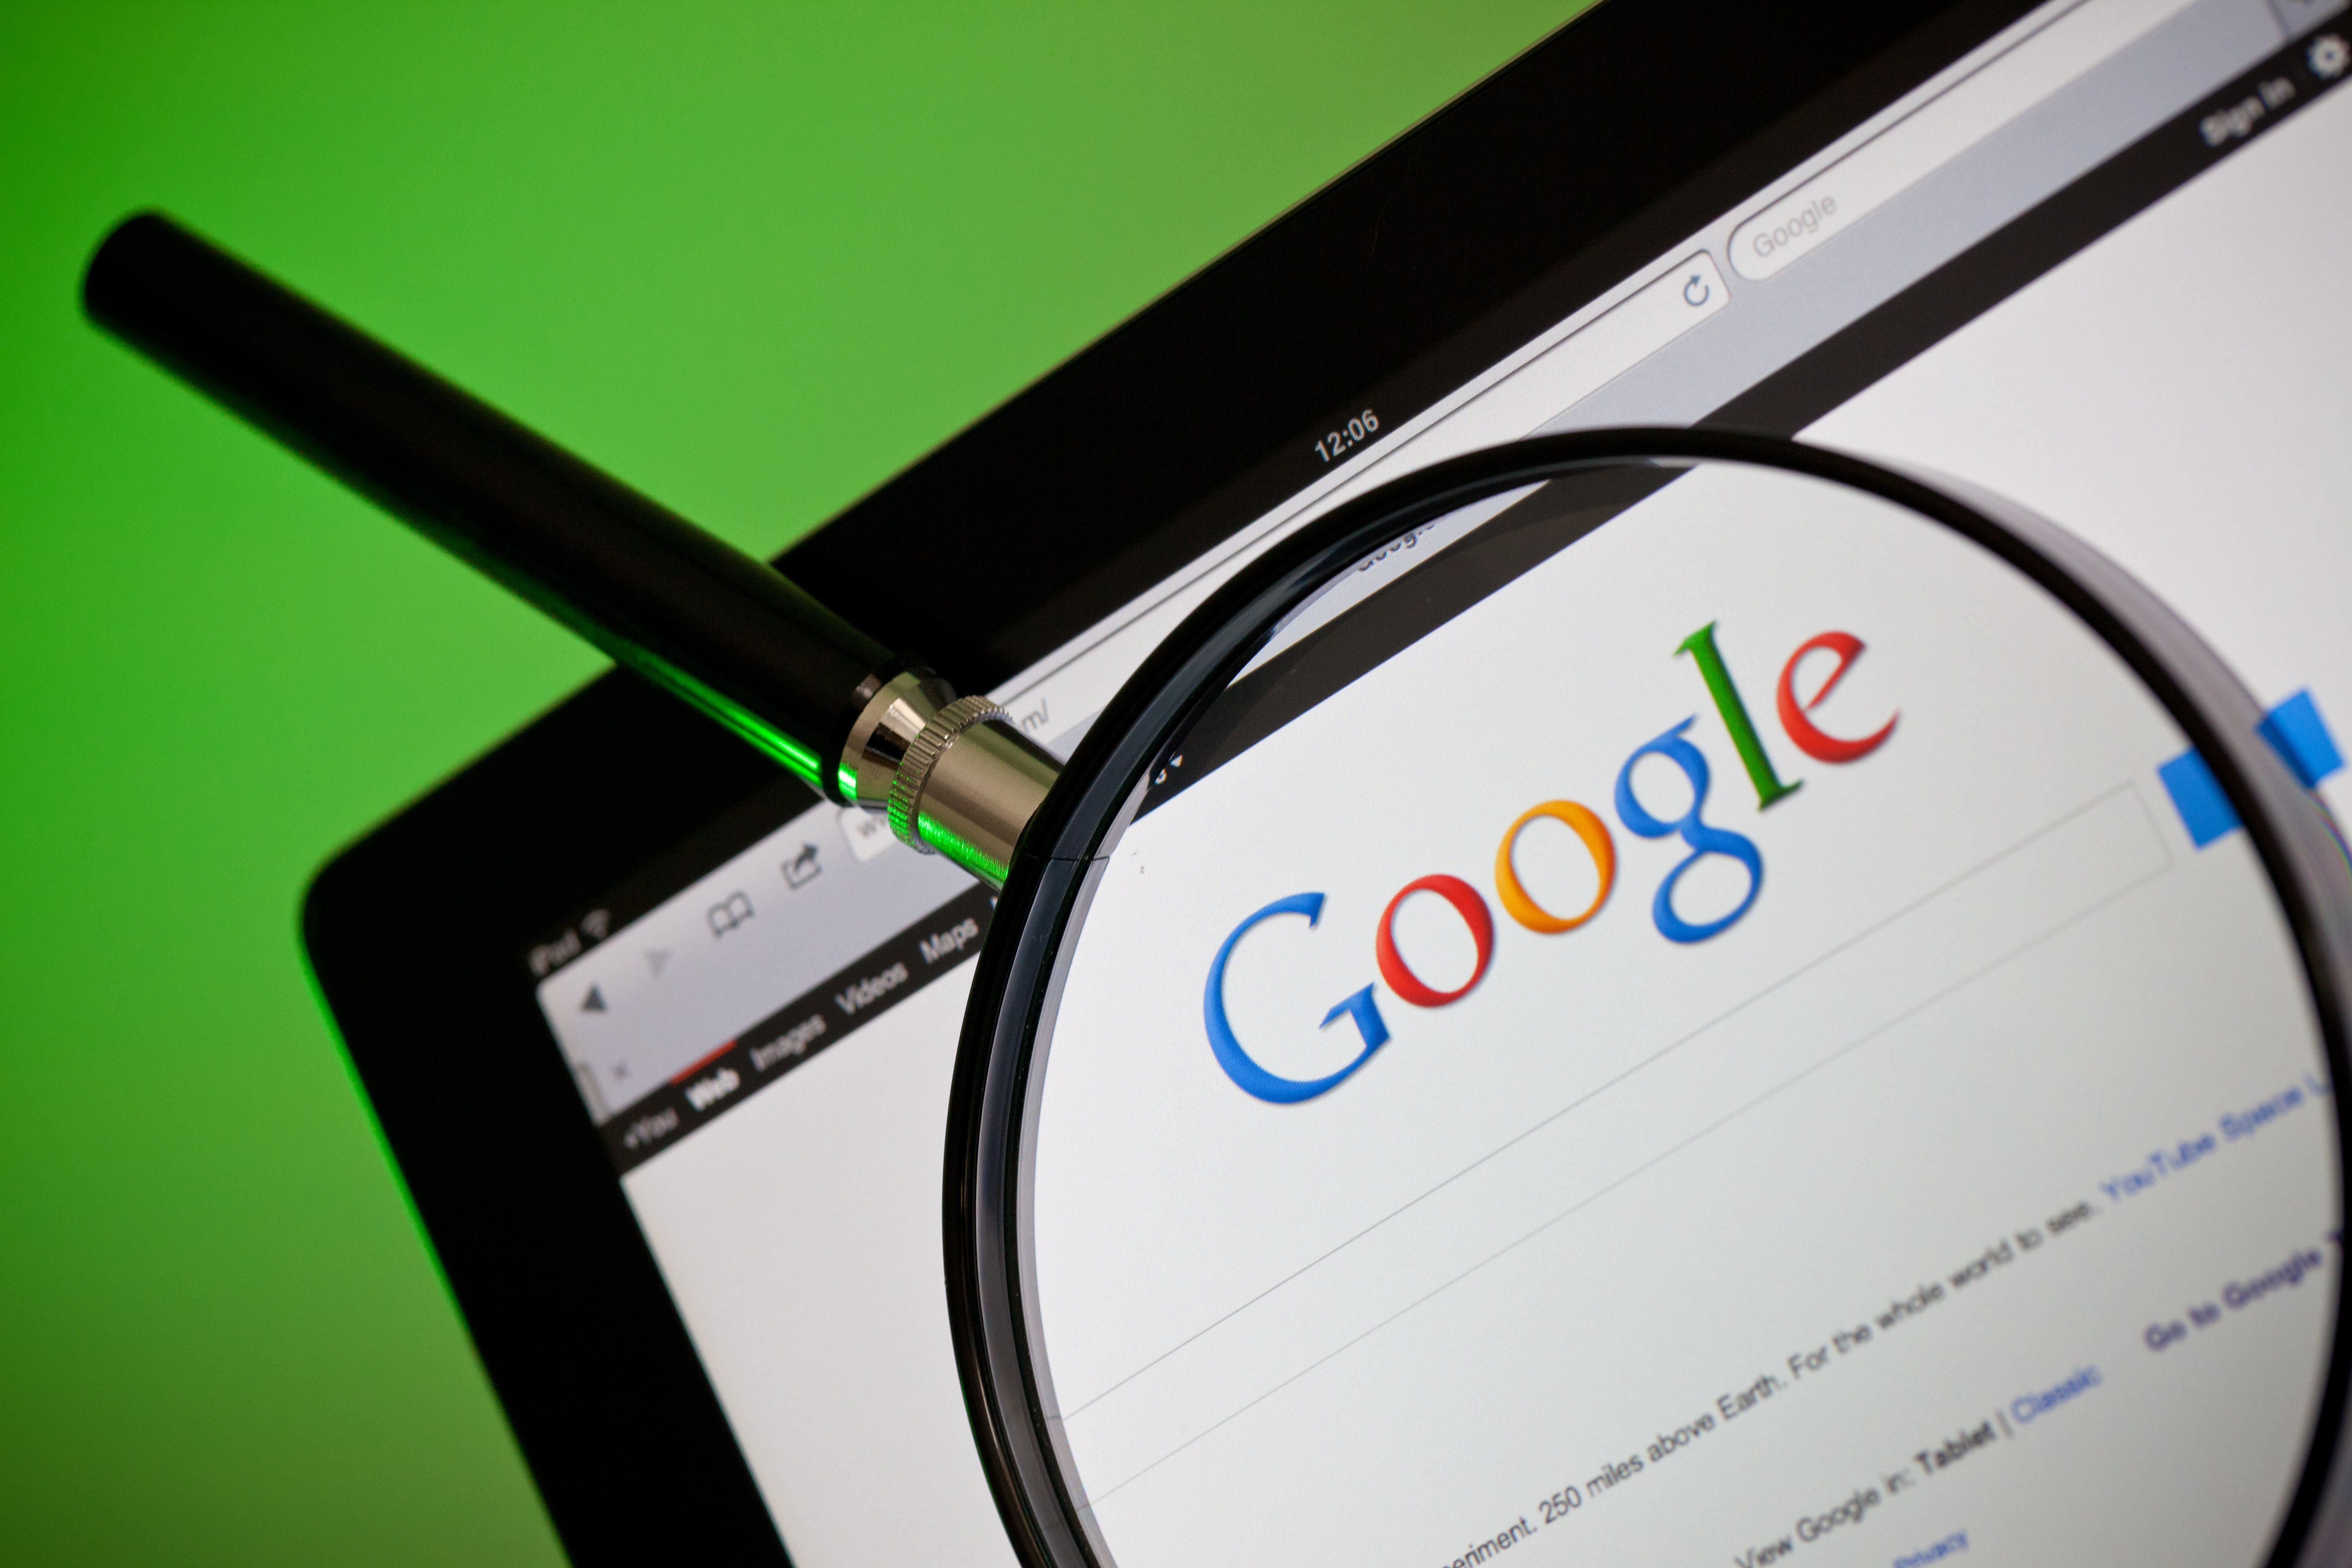 Read: How To See What Facebook, Google, And Twitter Know About You